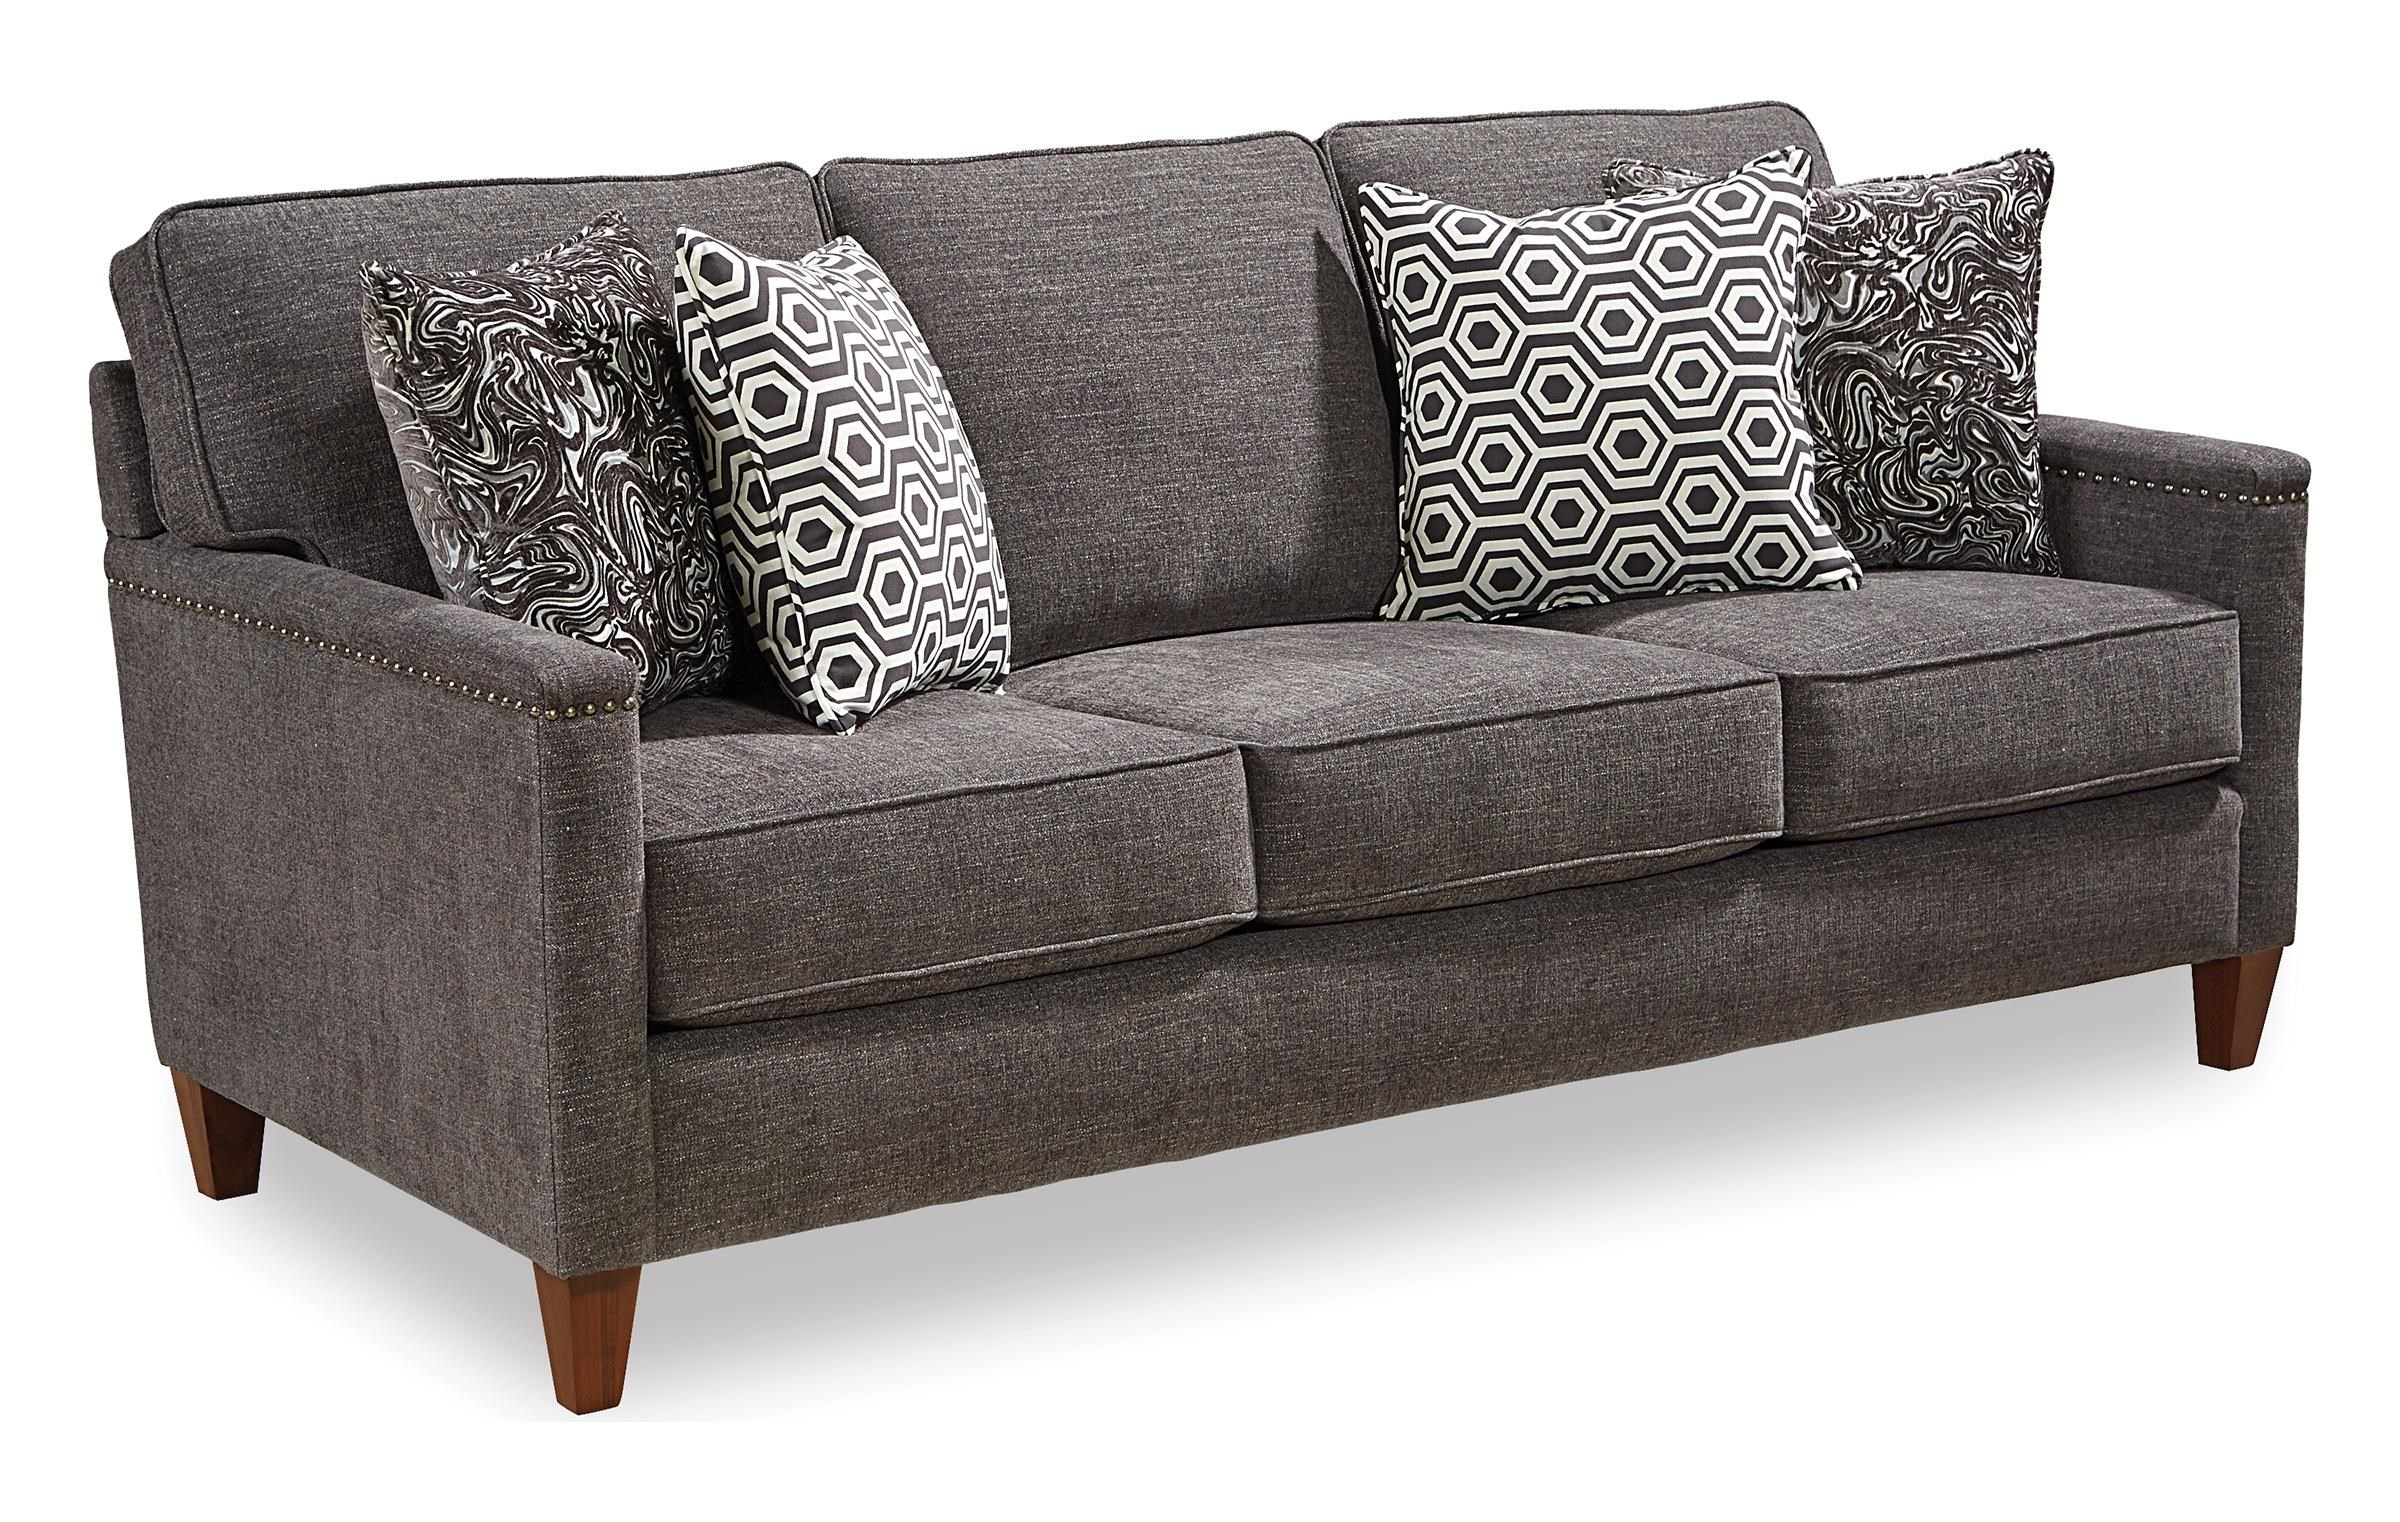 Lawson 0167135 Contemporary Sofa With Track Arms And Nailhead Trim By  Broyhill Furniture